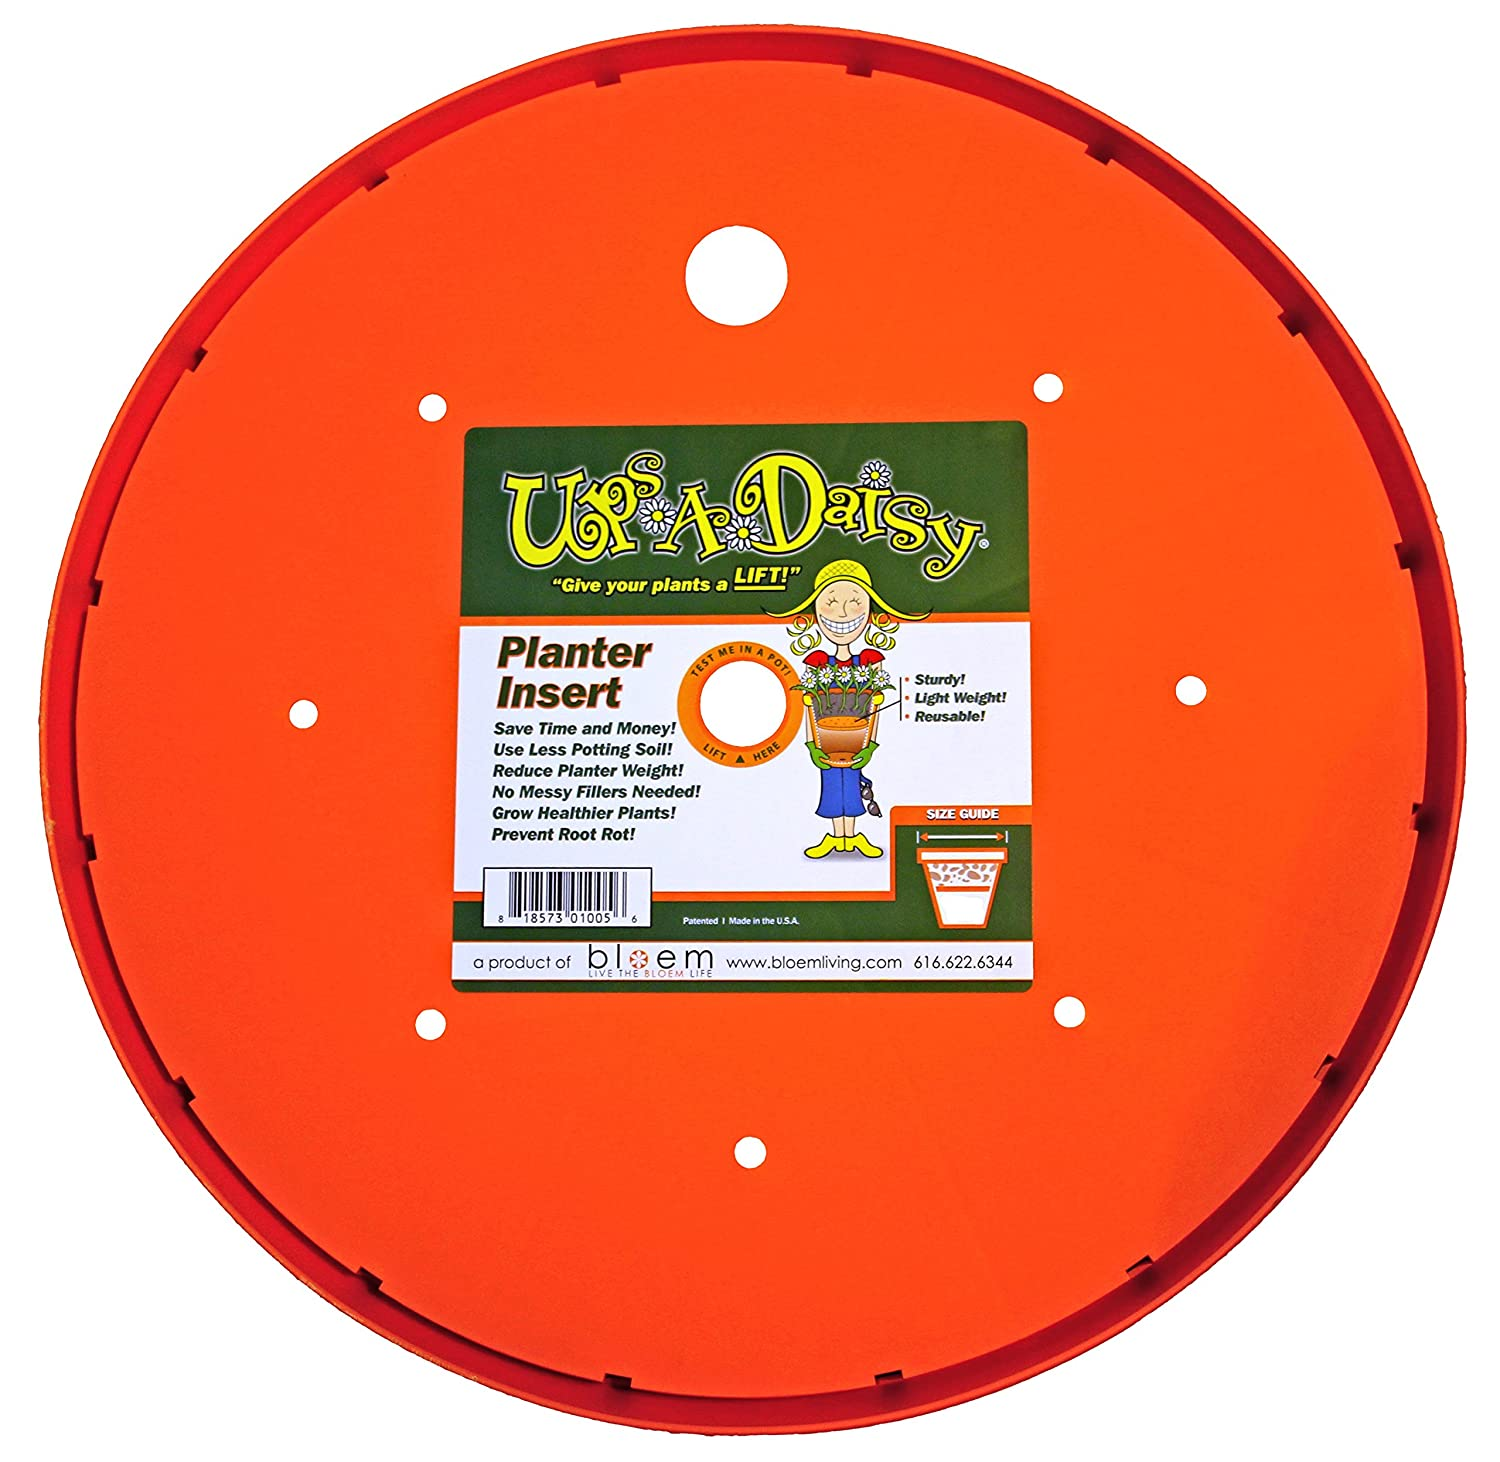 Bloem Living T6320 Up's A Daisy Planter Insert, 10-Inch, Orange